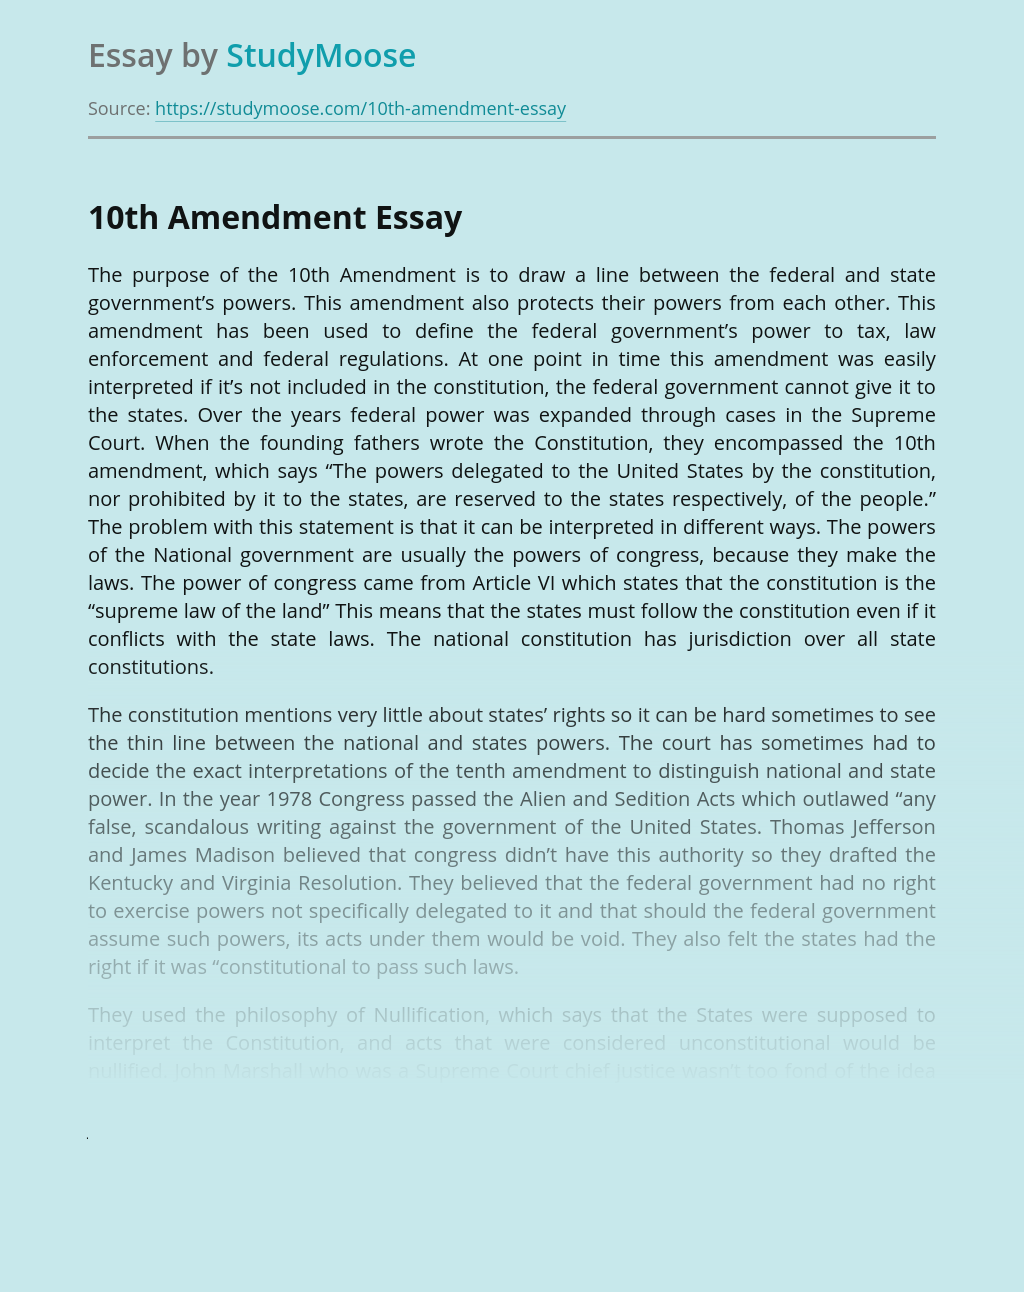 The Aim of the 10th Amendment